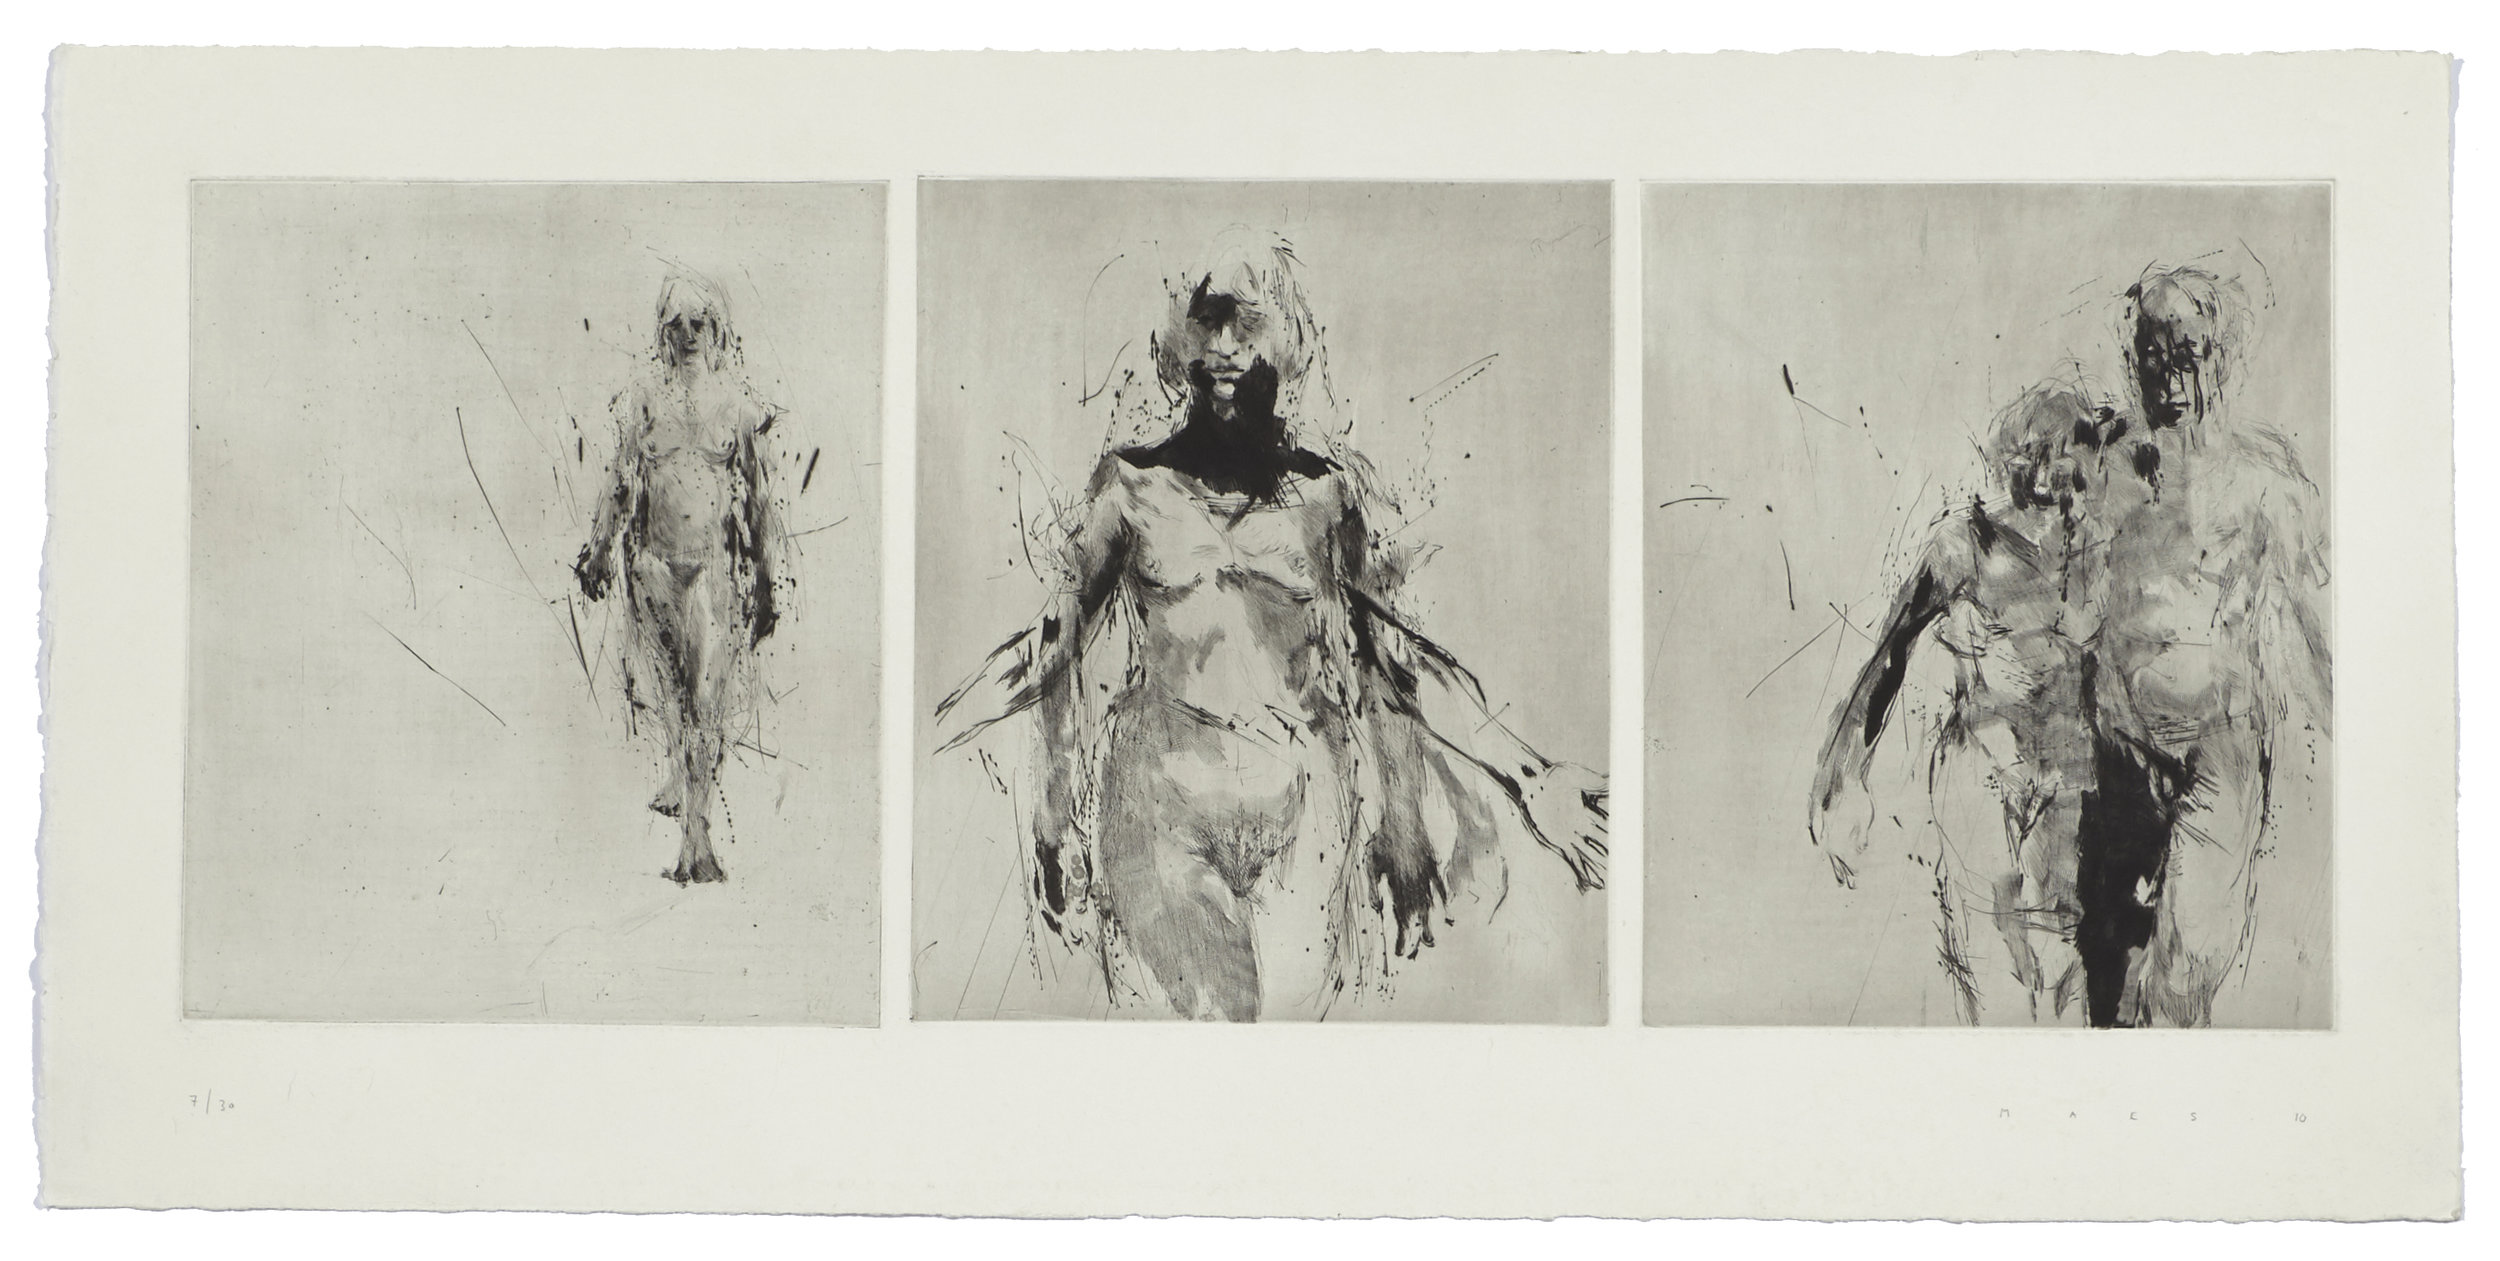 Song for A    2010 | 45 x 93 cm | Dry point | 30 prints